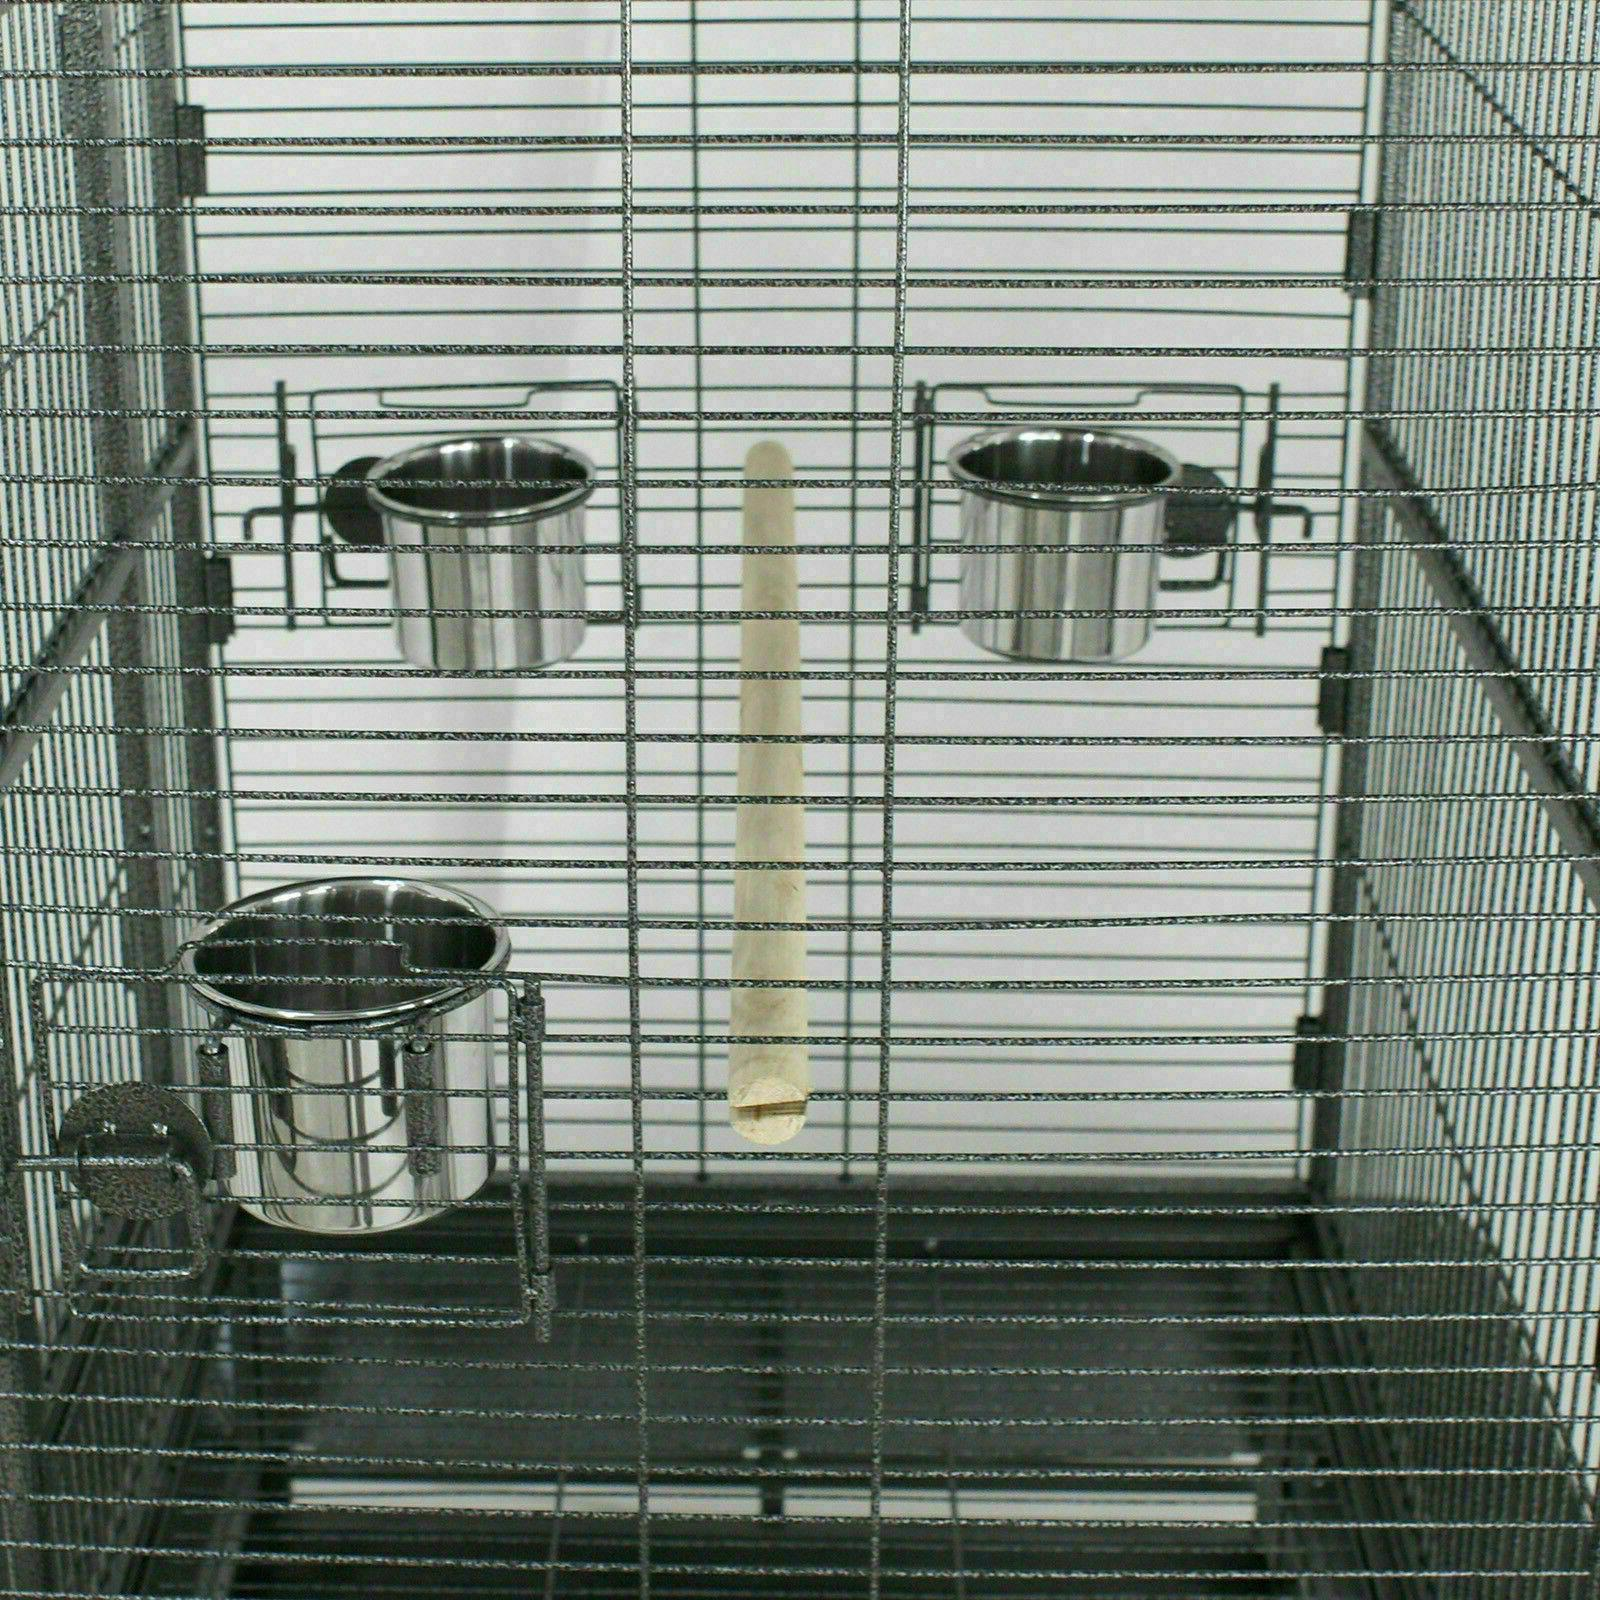 Parrot Cockatiel Concure Small Pets Large Bird Cage Perch Fe